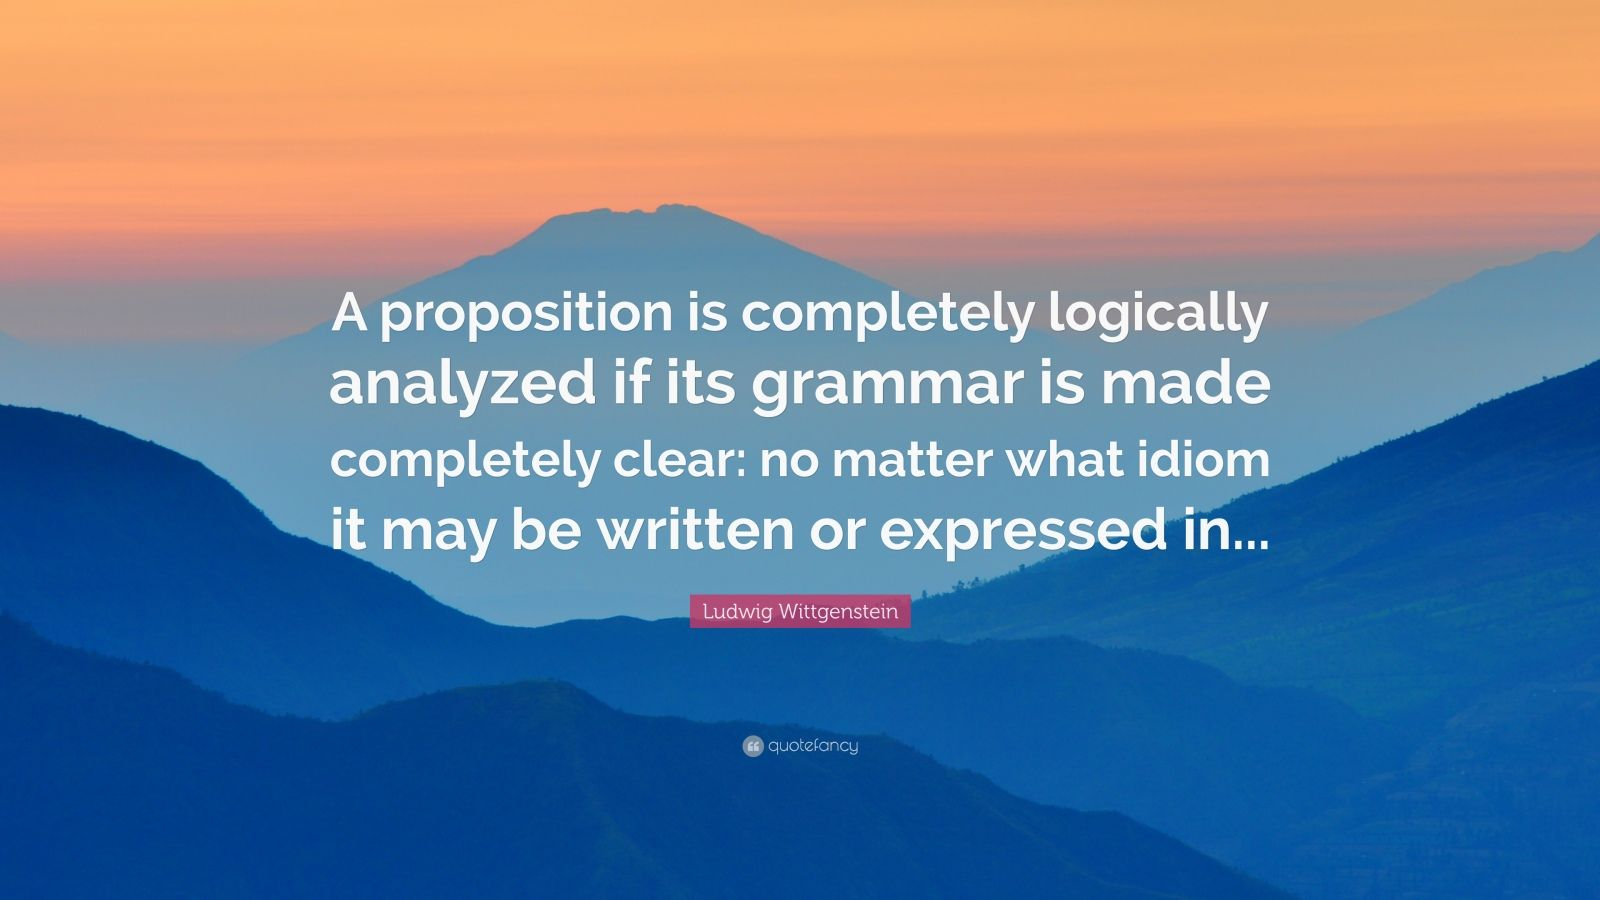 """Ludwig Wittgenstein Quote: """"A proposition is completely logically analyzed if its grammar is made completely clear: no matter what idiom it may be written or expressed in..."""""""